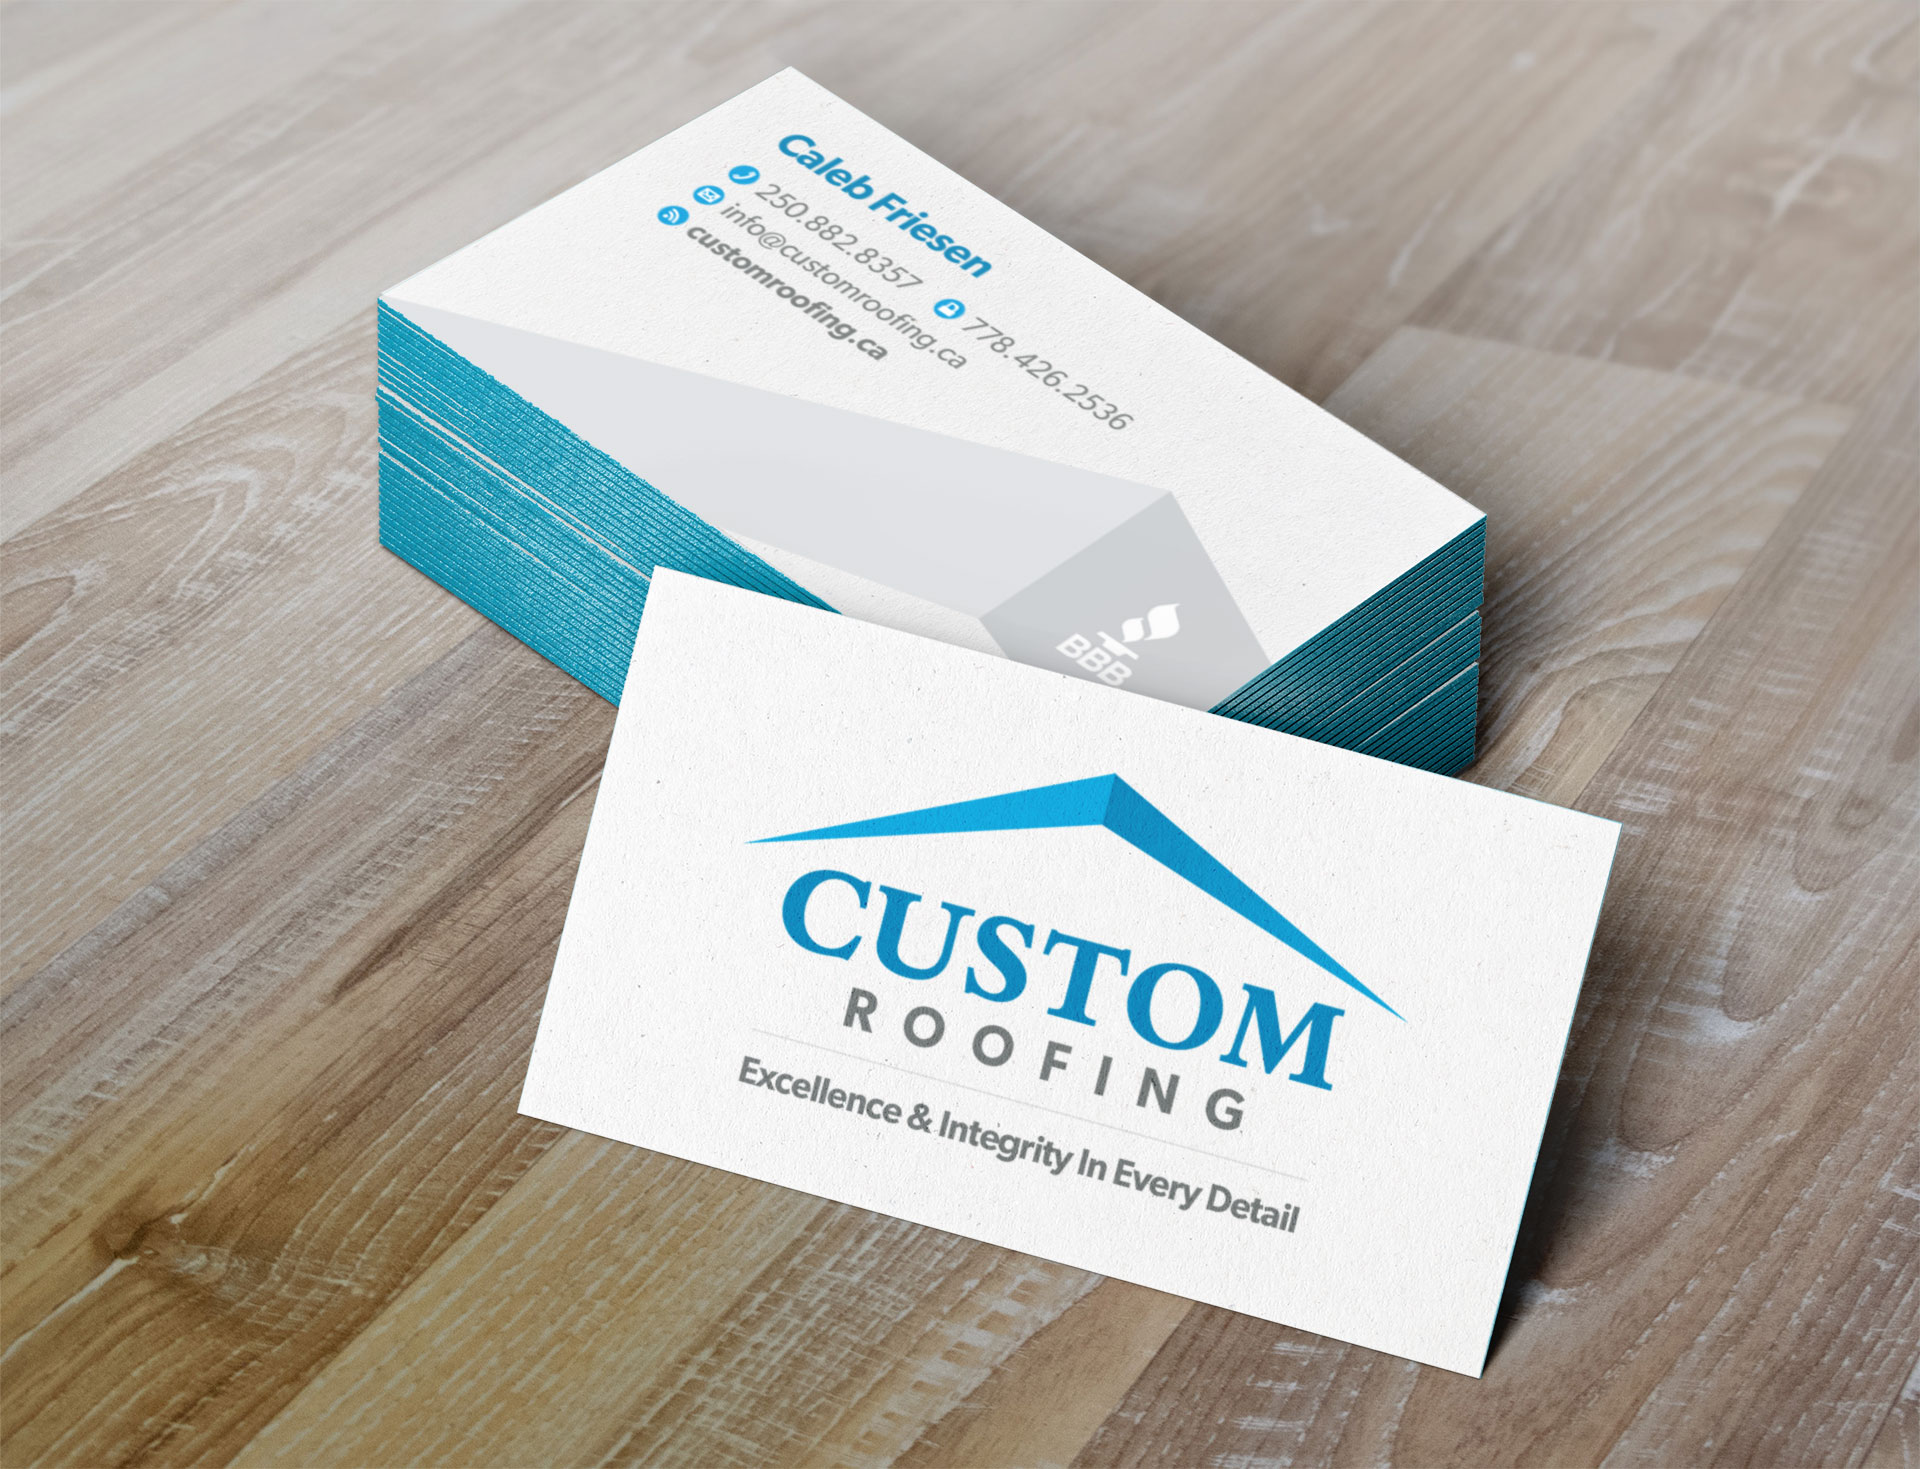 48north-customroofing-business-cards | 48North | Victoria BC